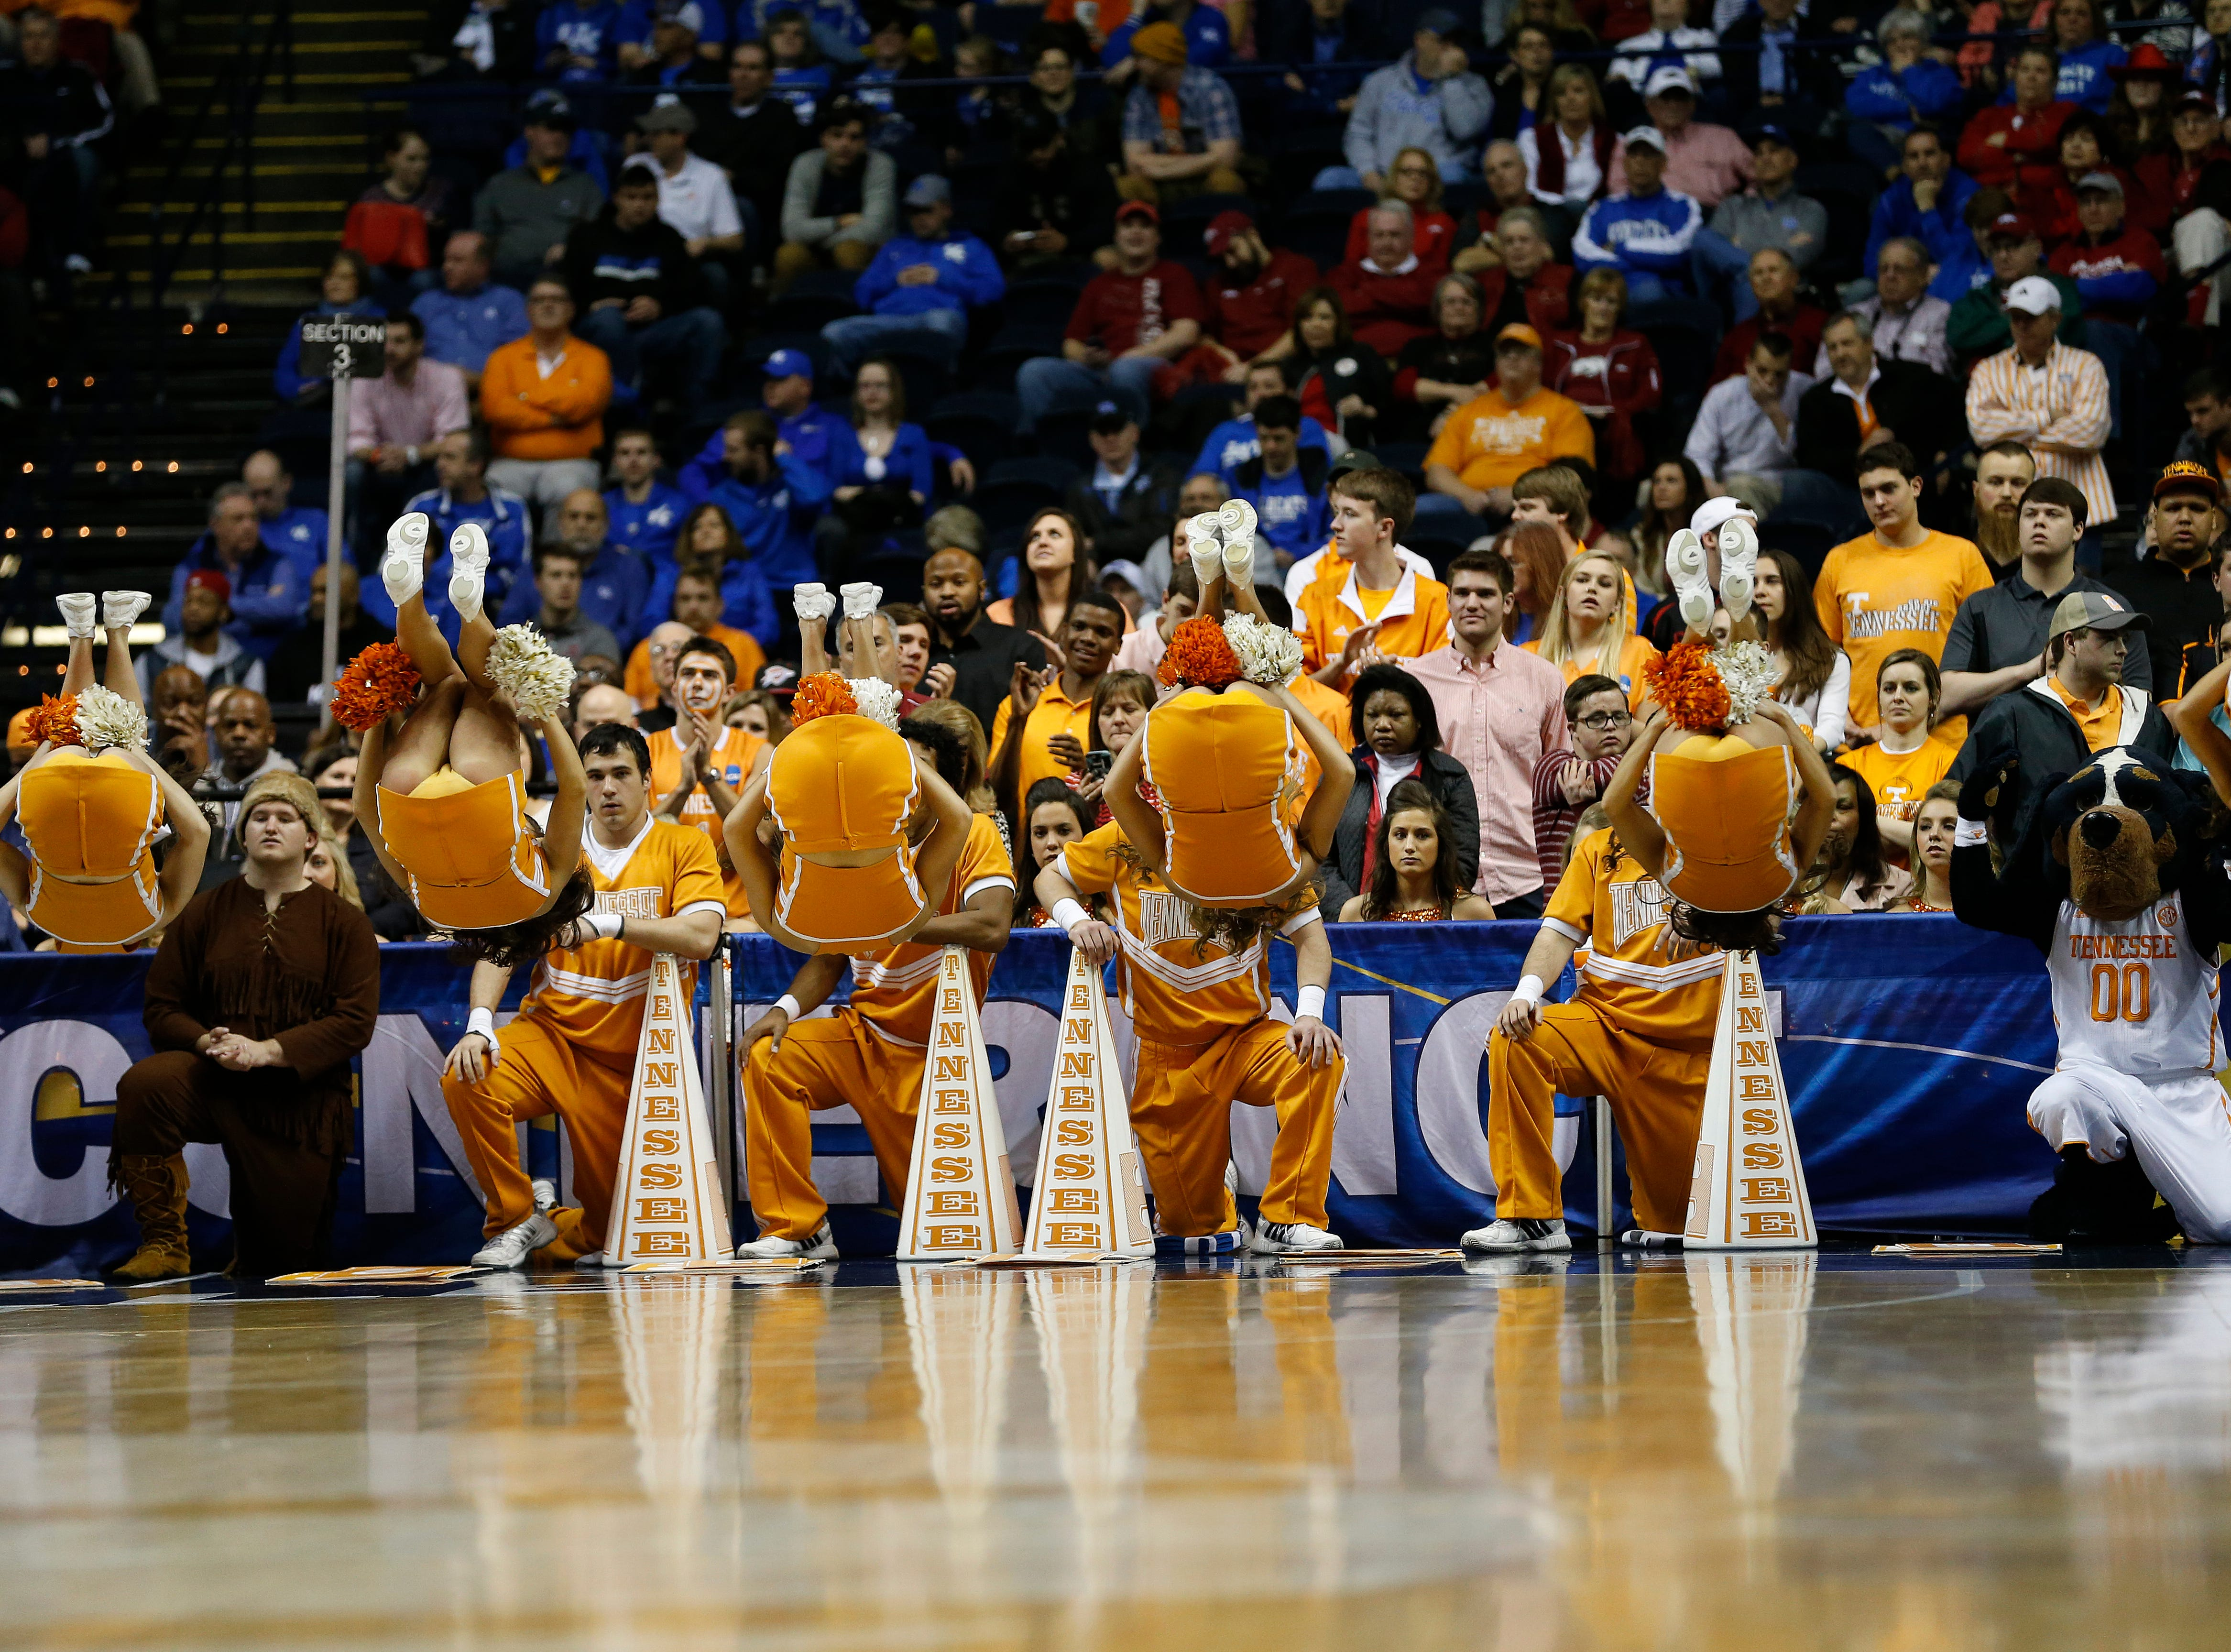 Tennessee cheerleaders perform during the first half of an NCAA college basketball game in the quarterfinal round of the Southeastern Conference tournament between Arkansas and Tennessee, Friday, March 13, 2015, in Nashville, Tenn. (AP Photo/Steve Helber)